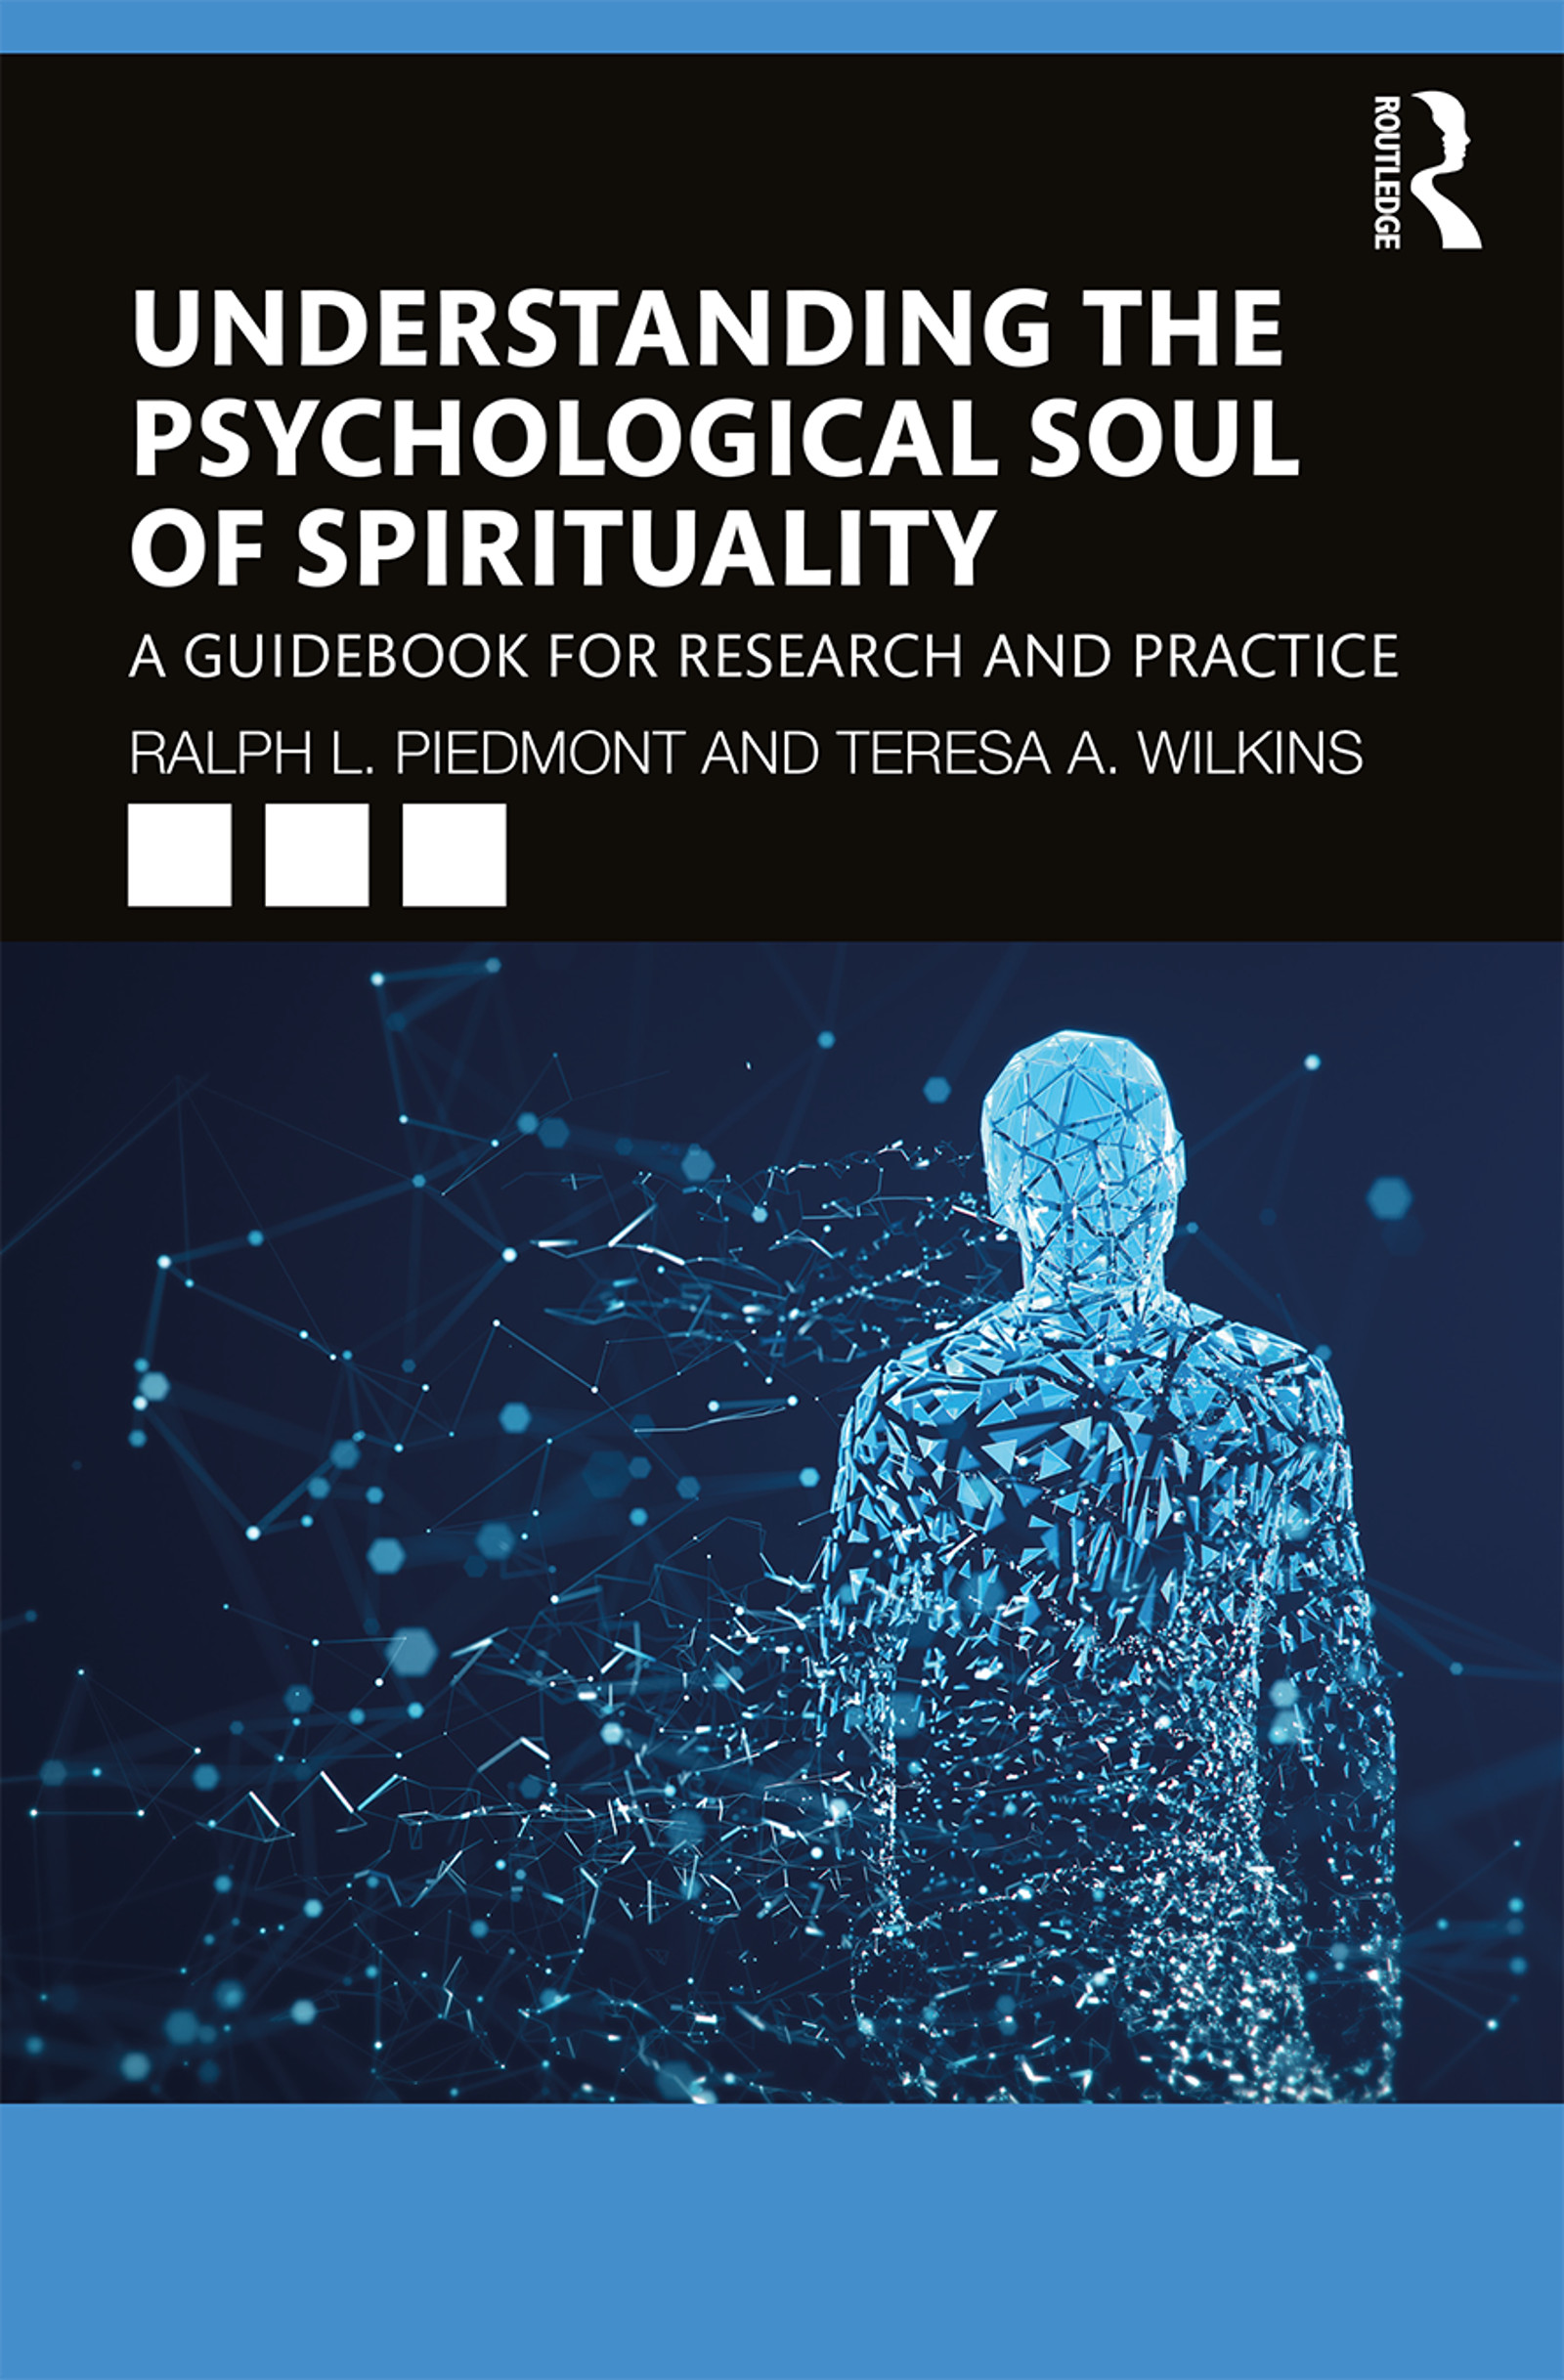 Understanding the Psychological Soul of Spirituality: A Guidebook for Research and Practice book cover